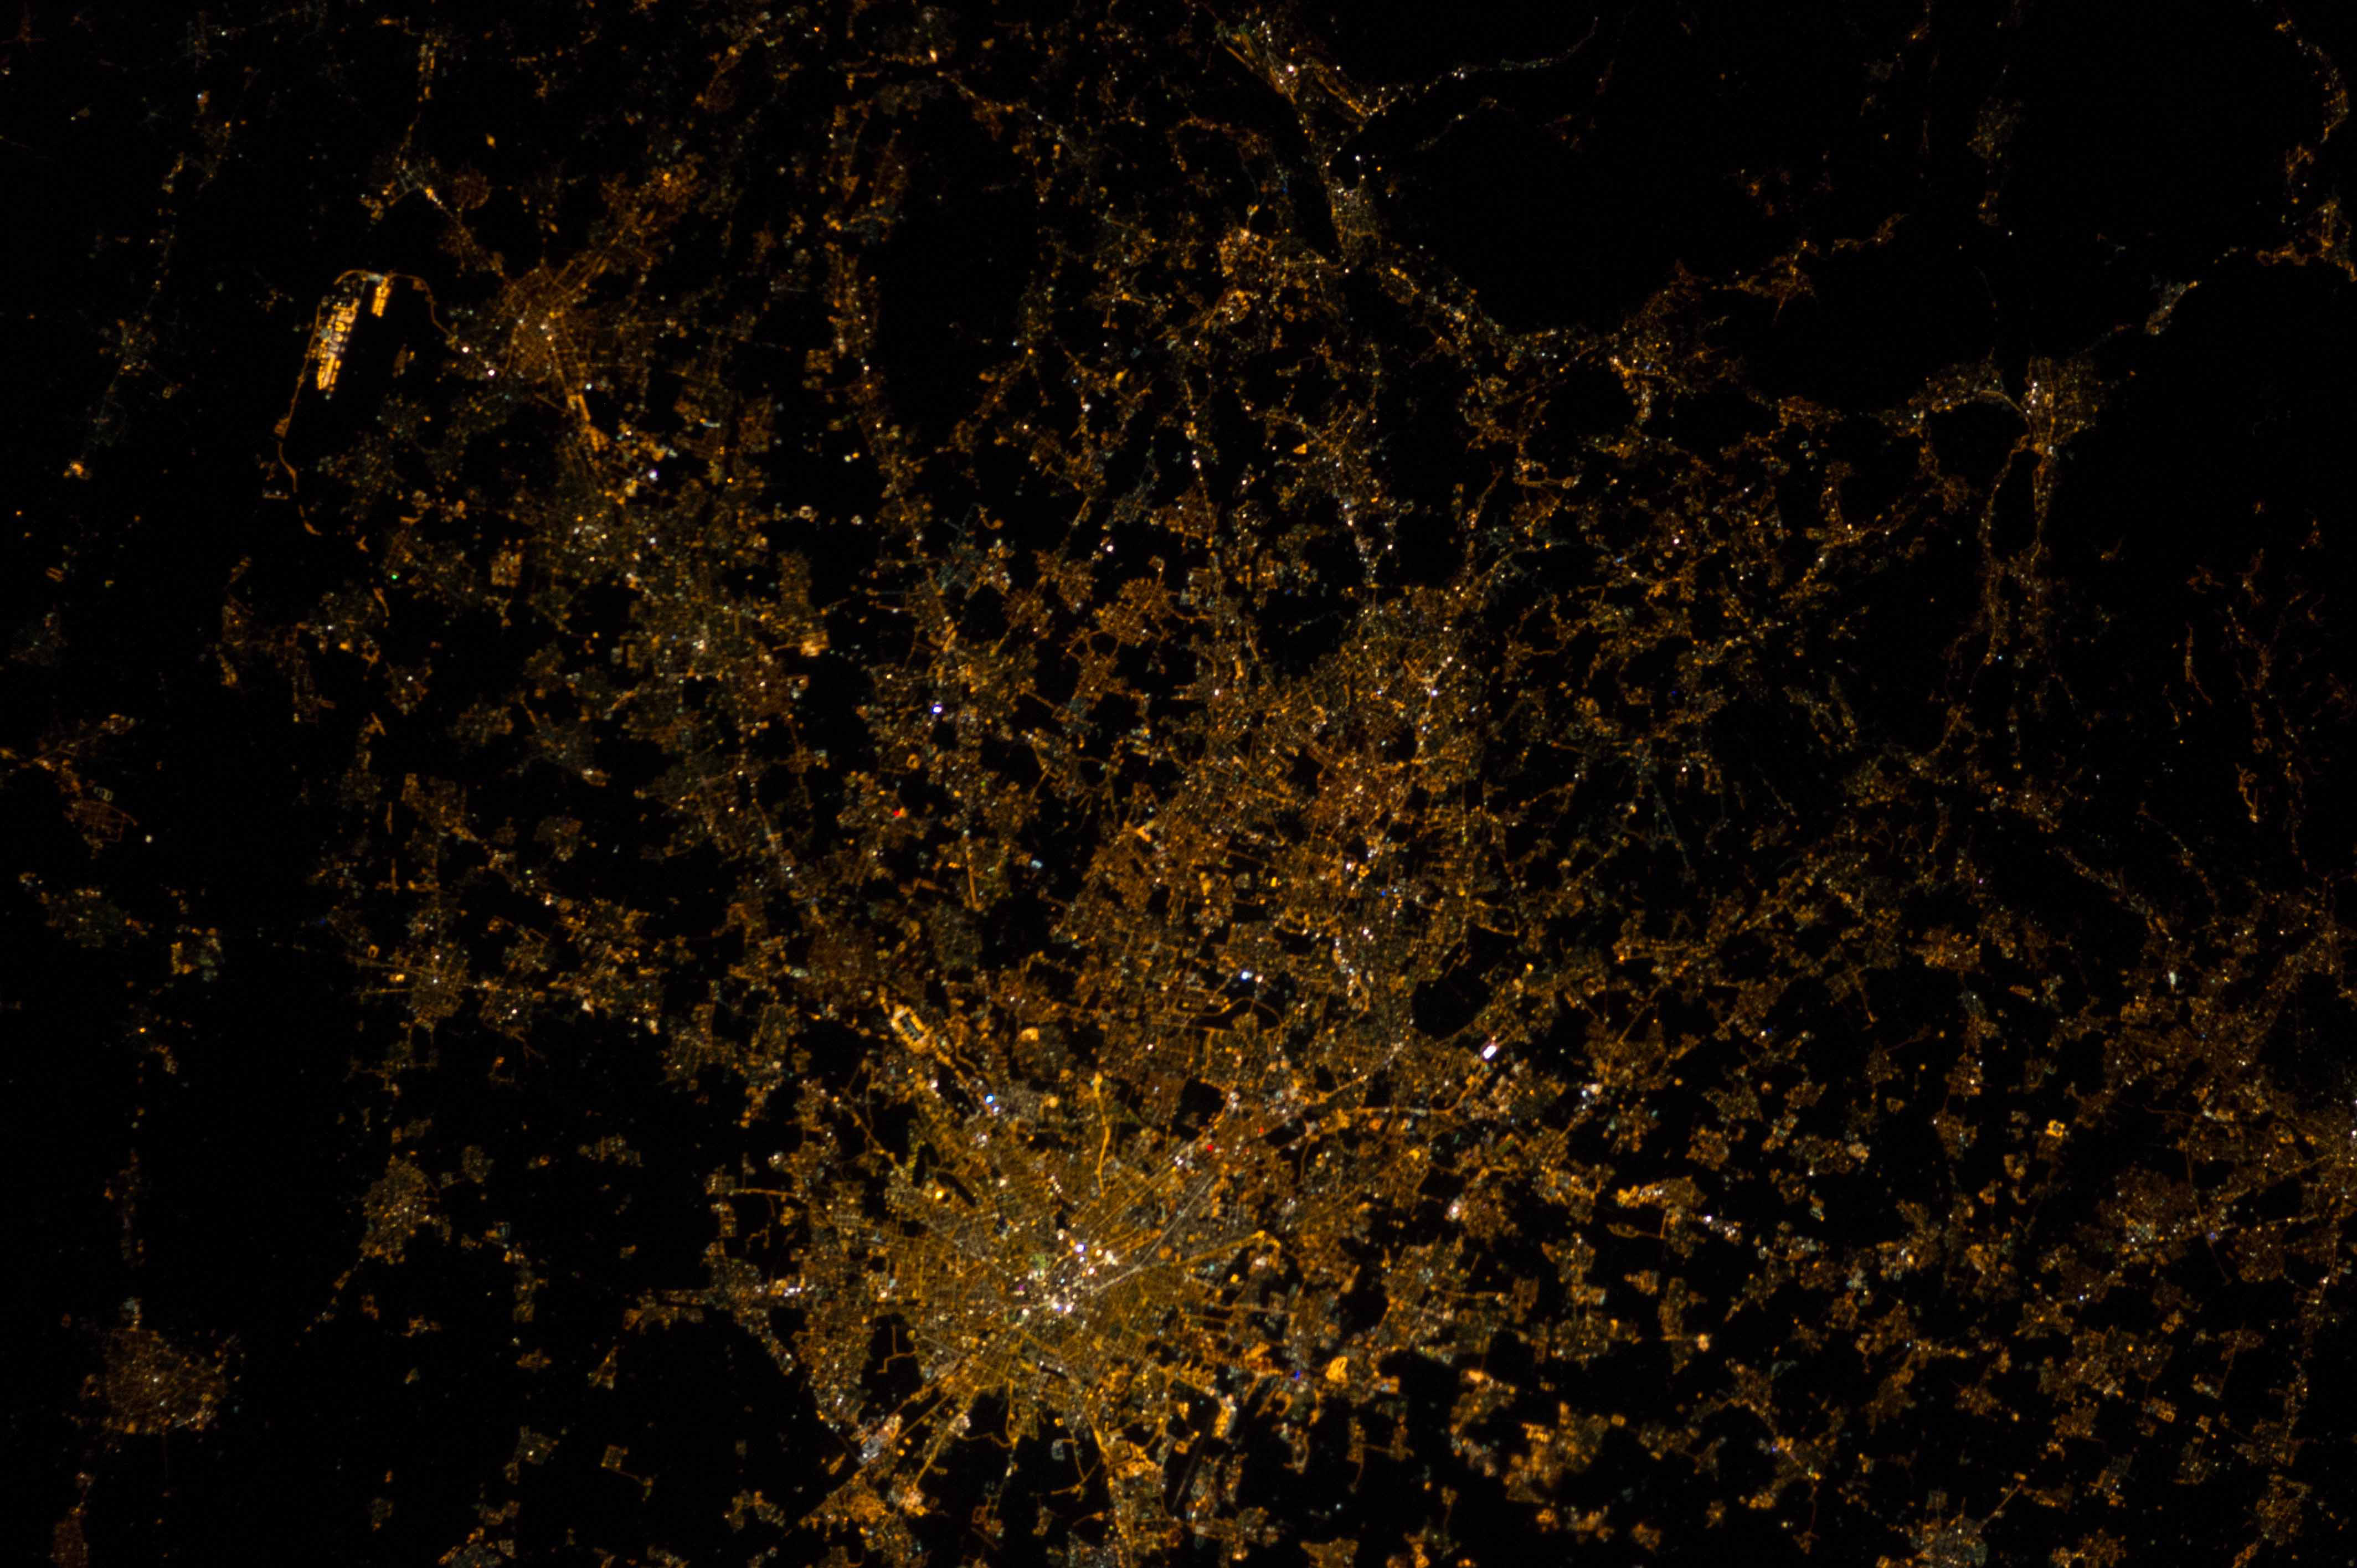 400 800 Hd Wallpaper Space In Images 2014 02 Milan Italy